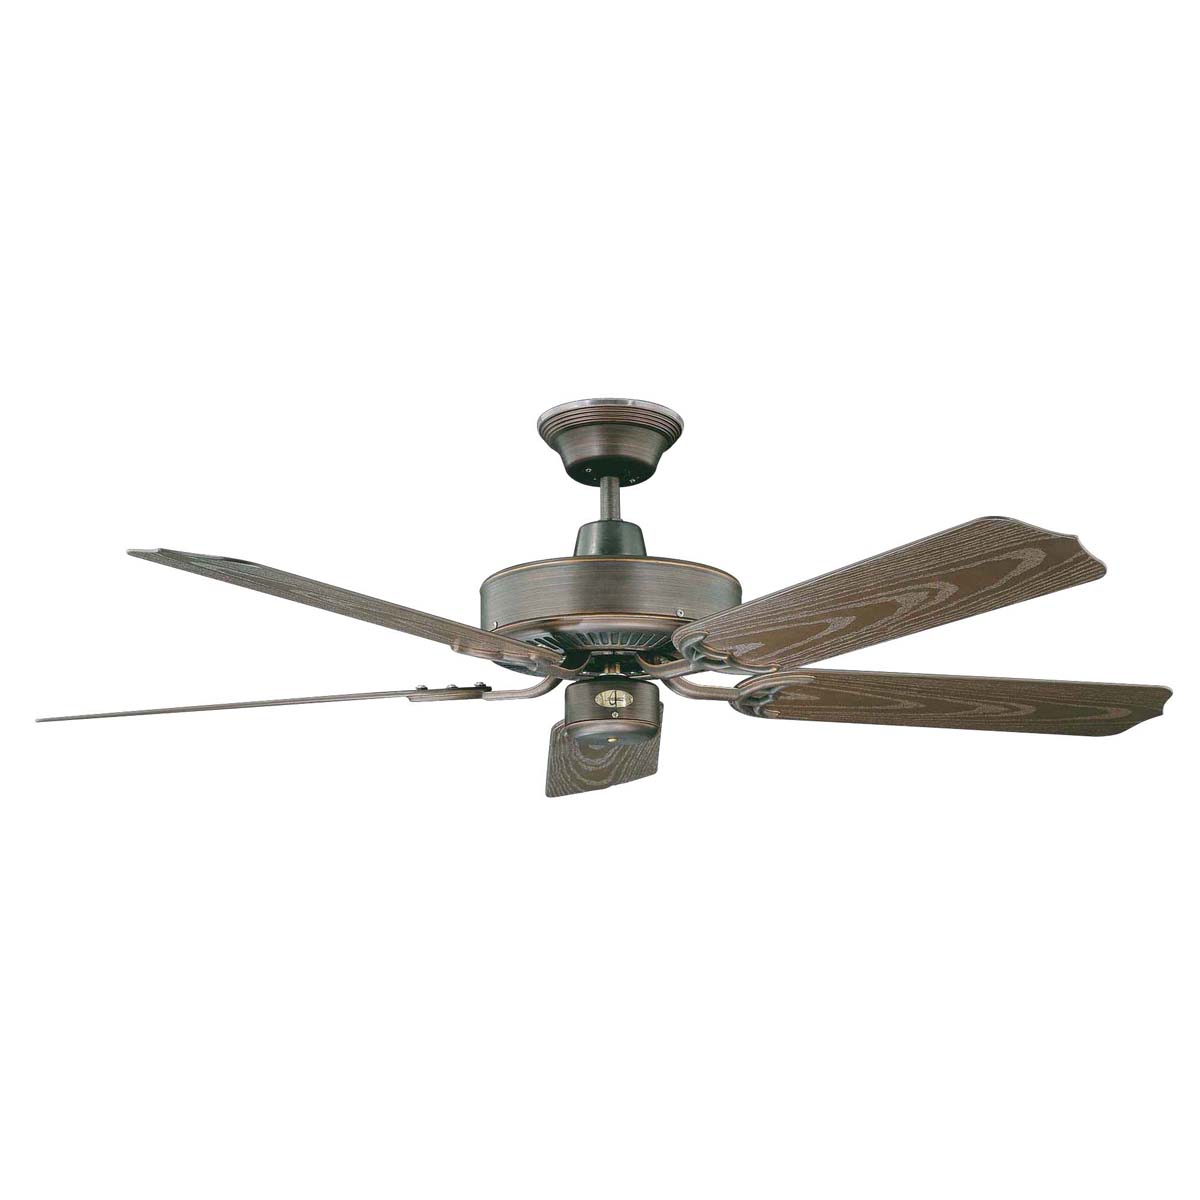 ceiling fan small photo - 3